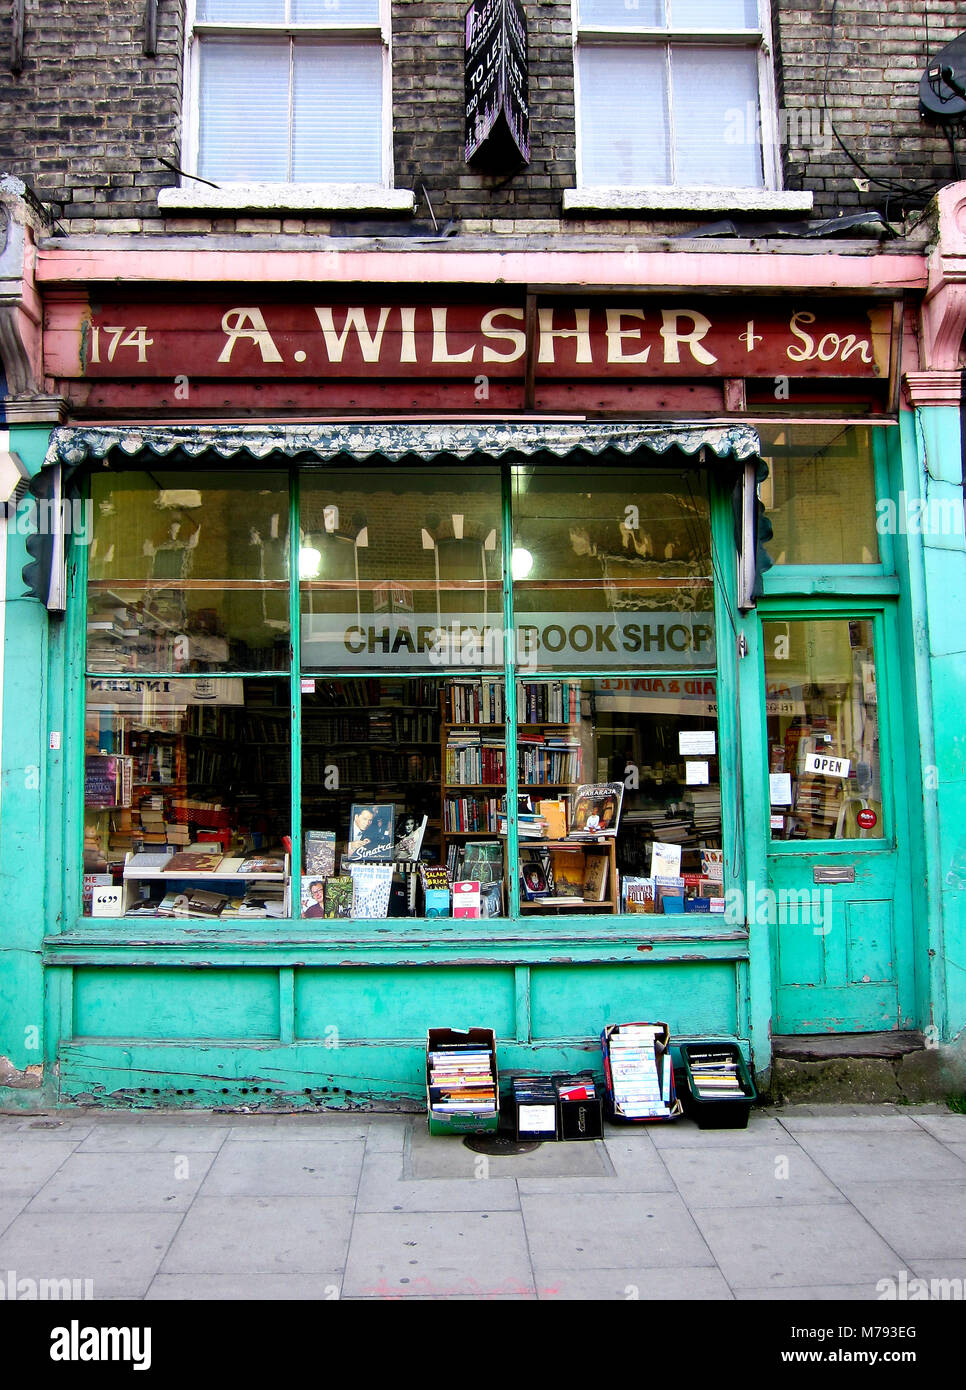 Bookseller - Stock Image